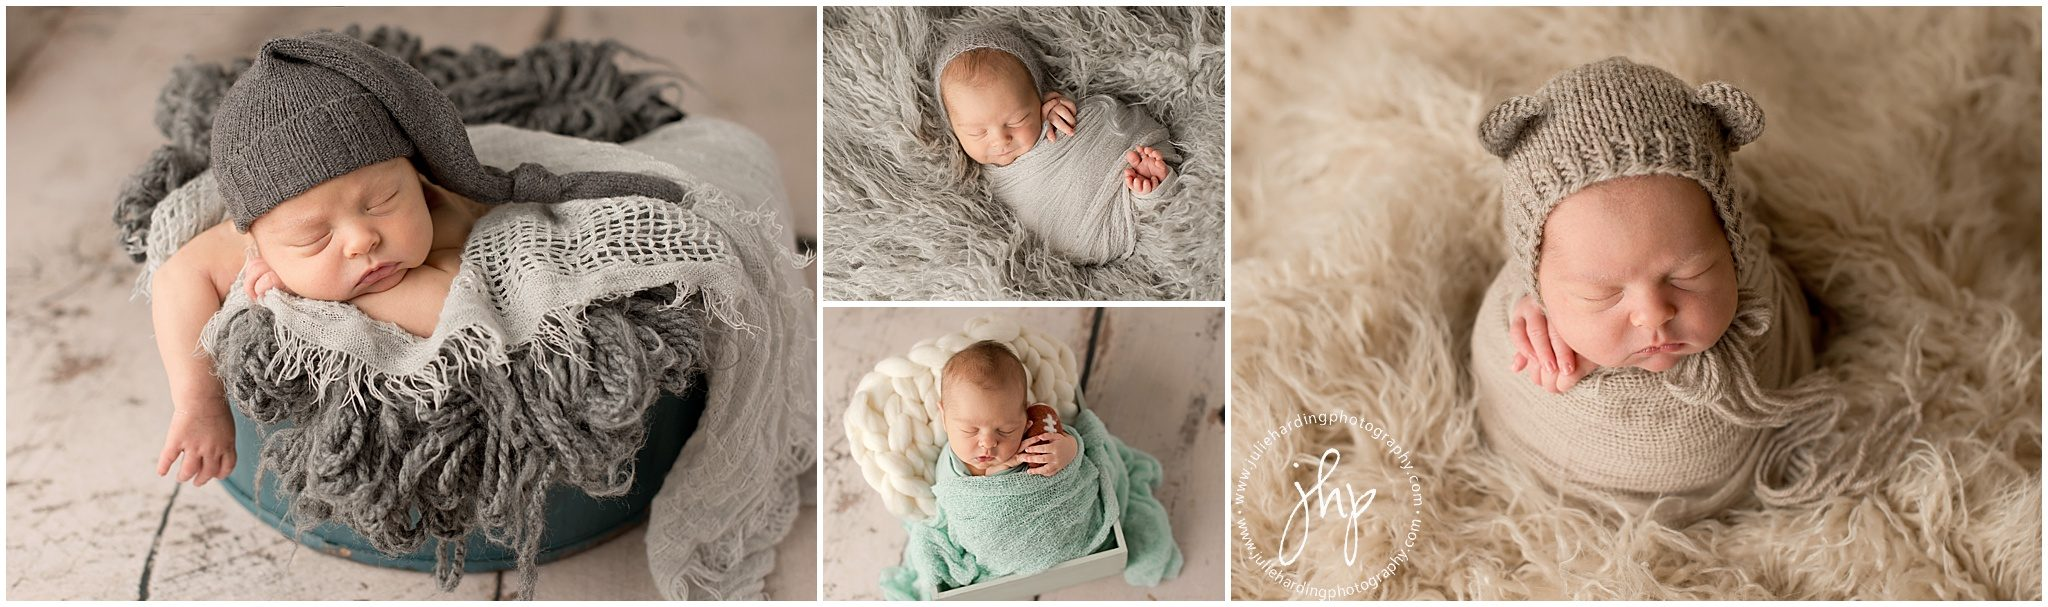 Newborn studio photosession Aledo